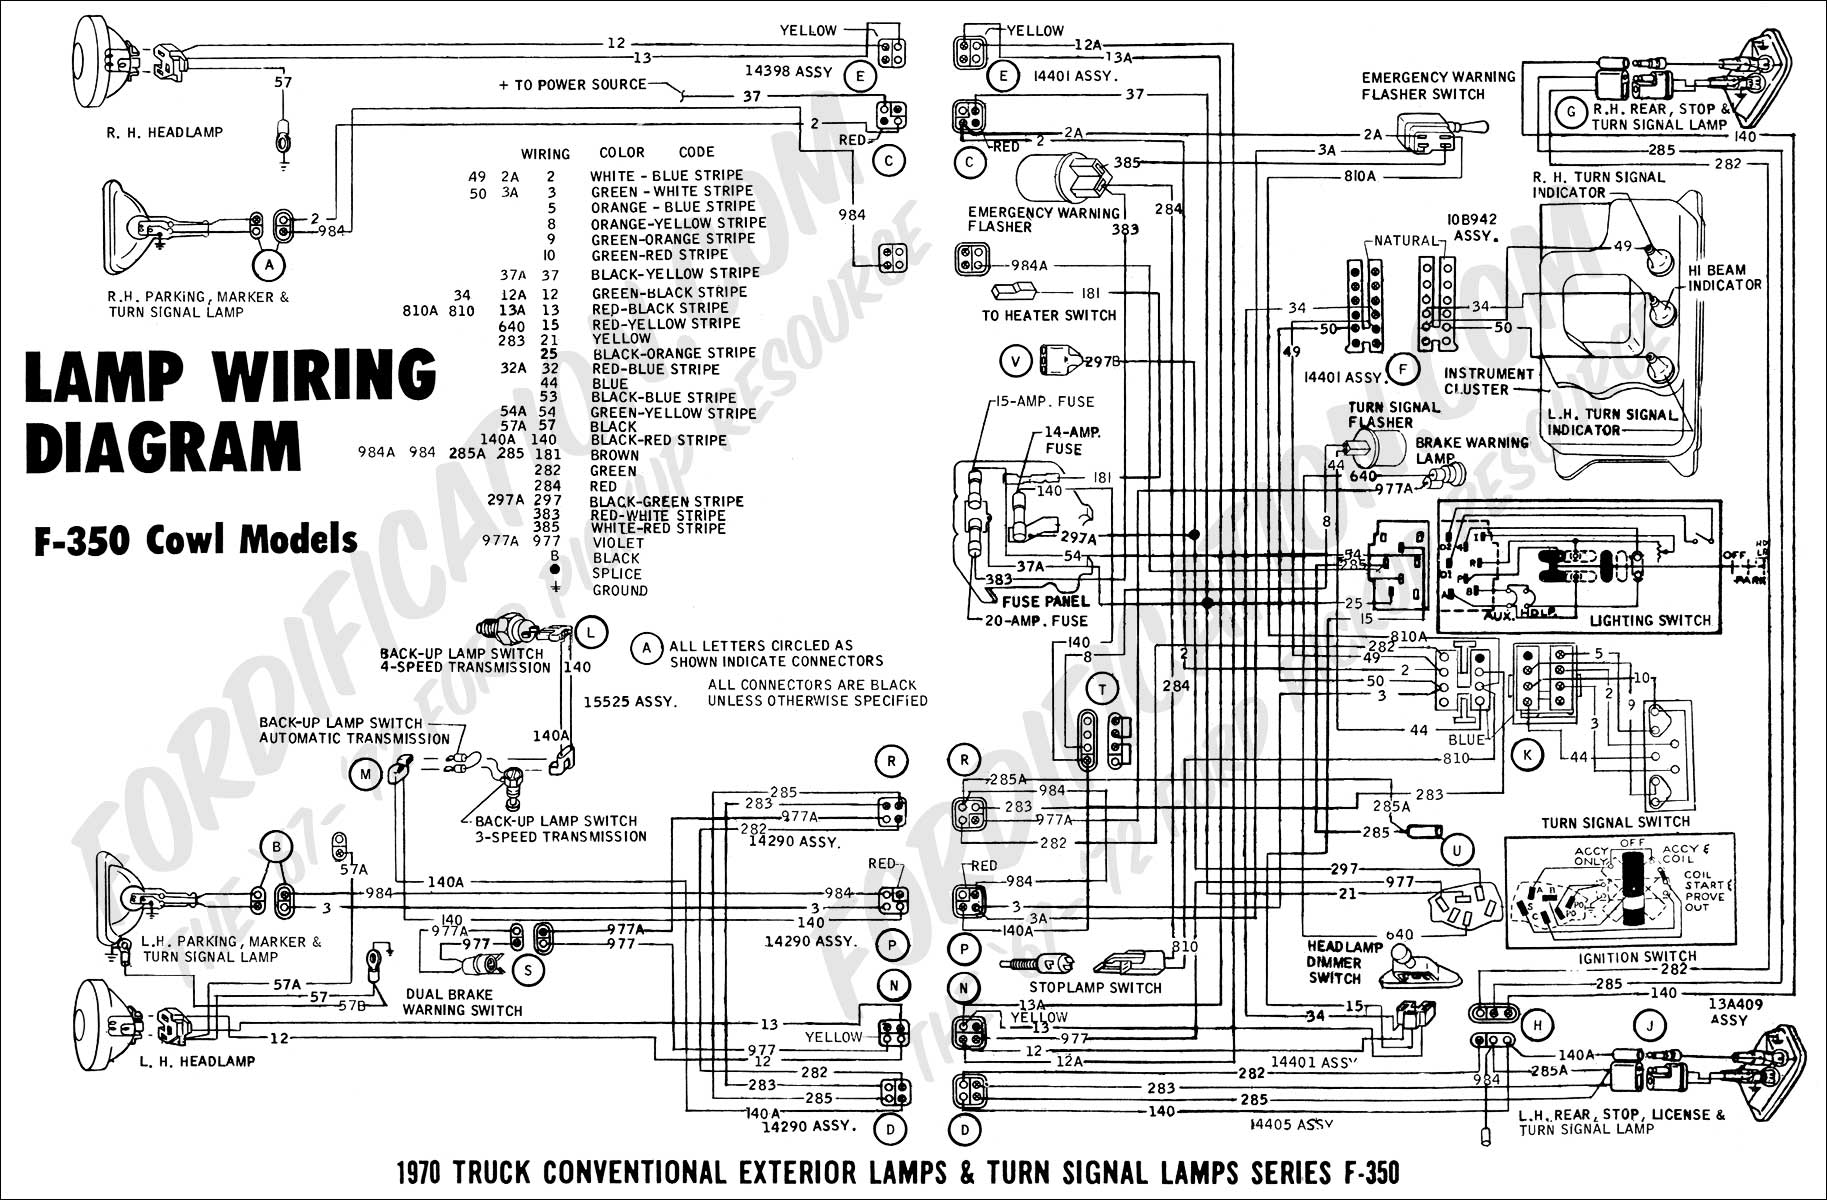 2006 f250 super duty fuse diagram wirdig diagram as well 2006 ford e 450 fuse box diagram likewise 2005 ford